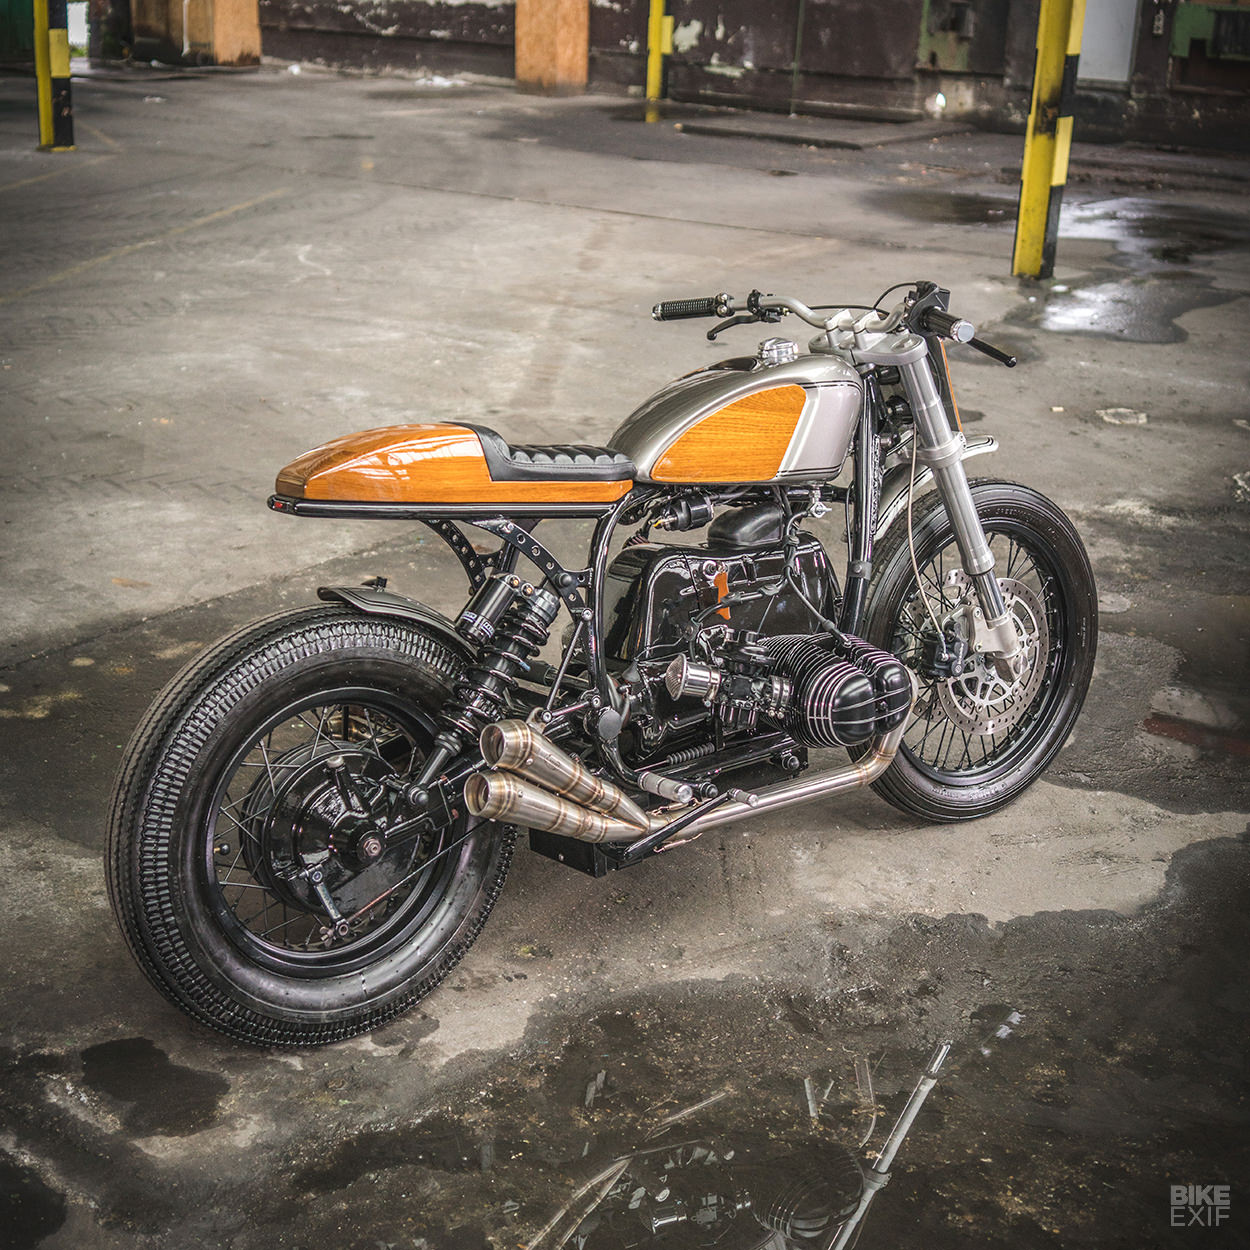 Ironwoods New Bmw Boxer Goes With The Grain Bike Exif Fat Sitting Up Top Is An Aftermarket Tank Originally Designed For A Harley Davidson Sportster Forty Eight Its Been Modded To Fit And Run Two Petcocks